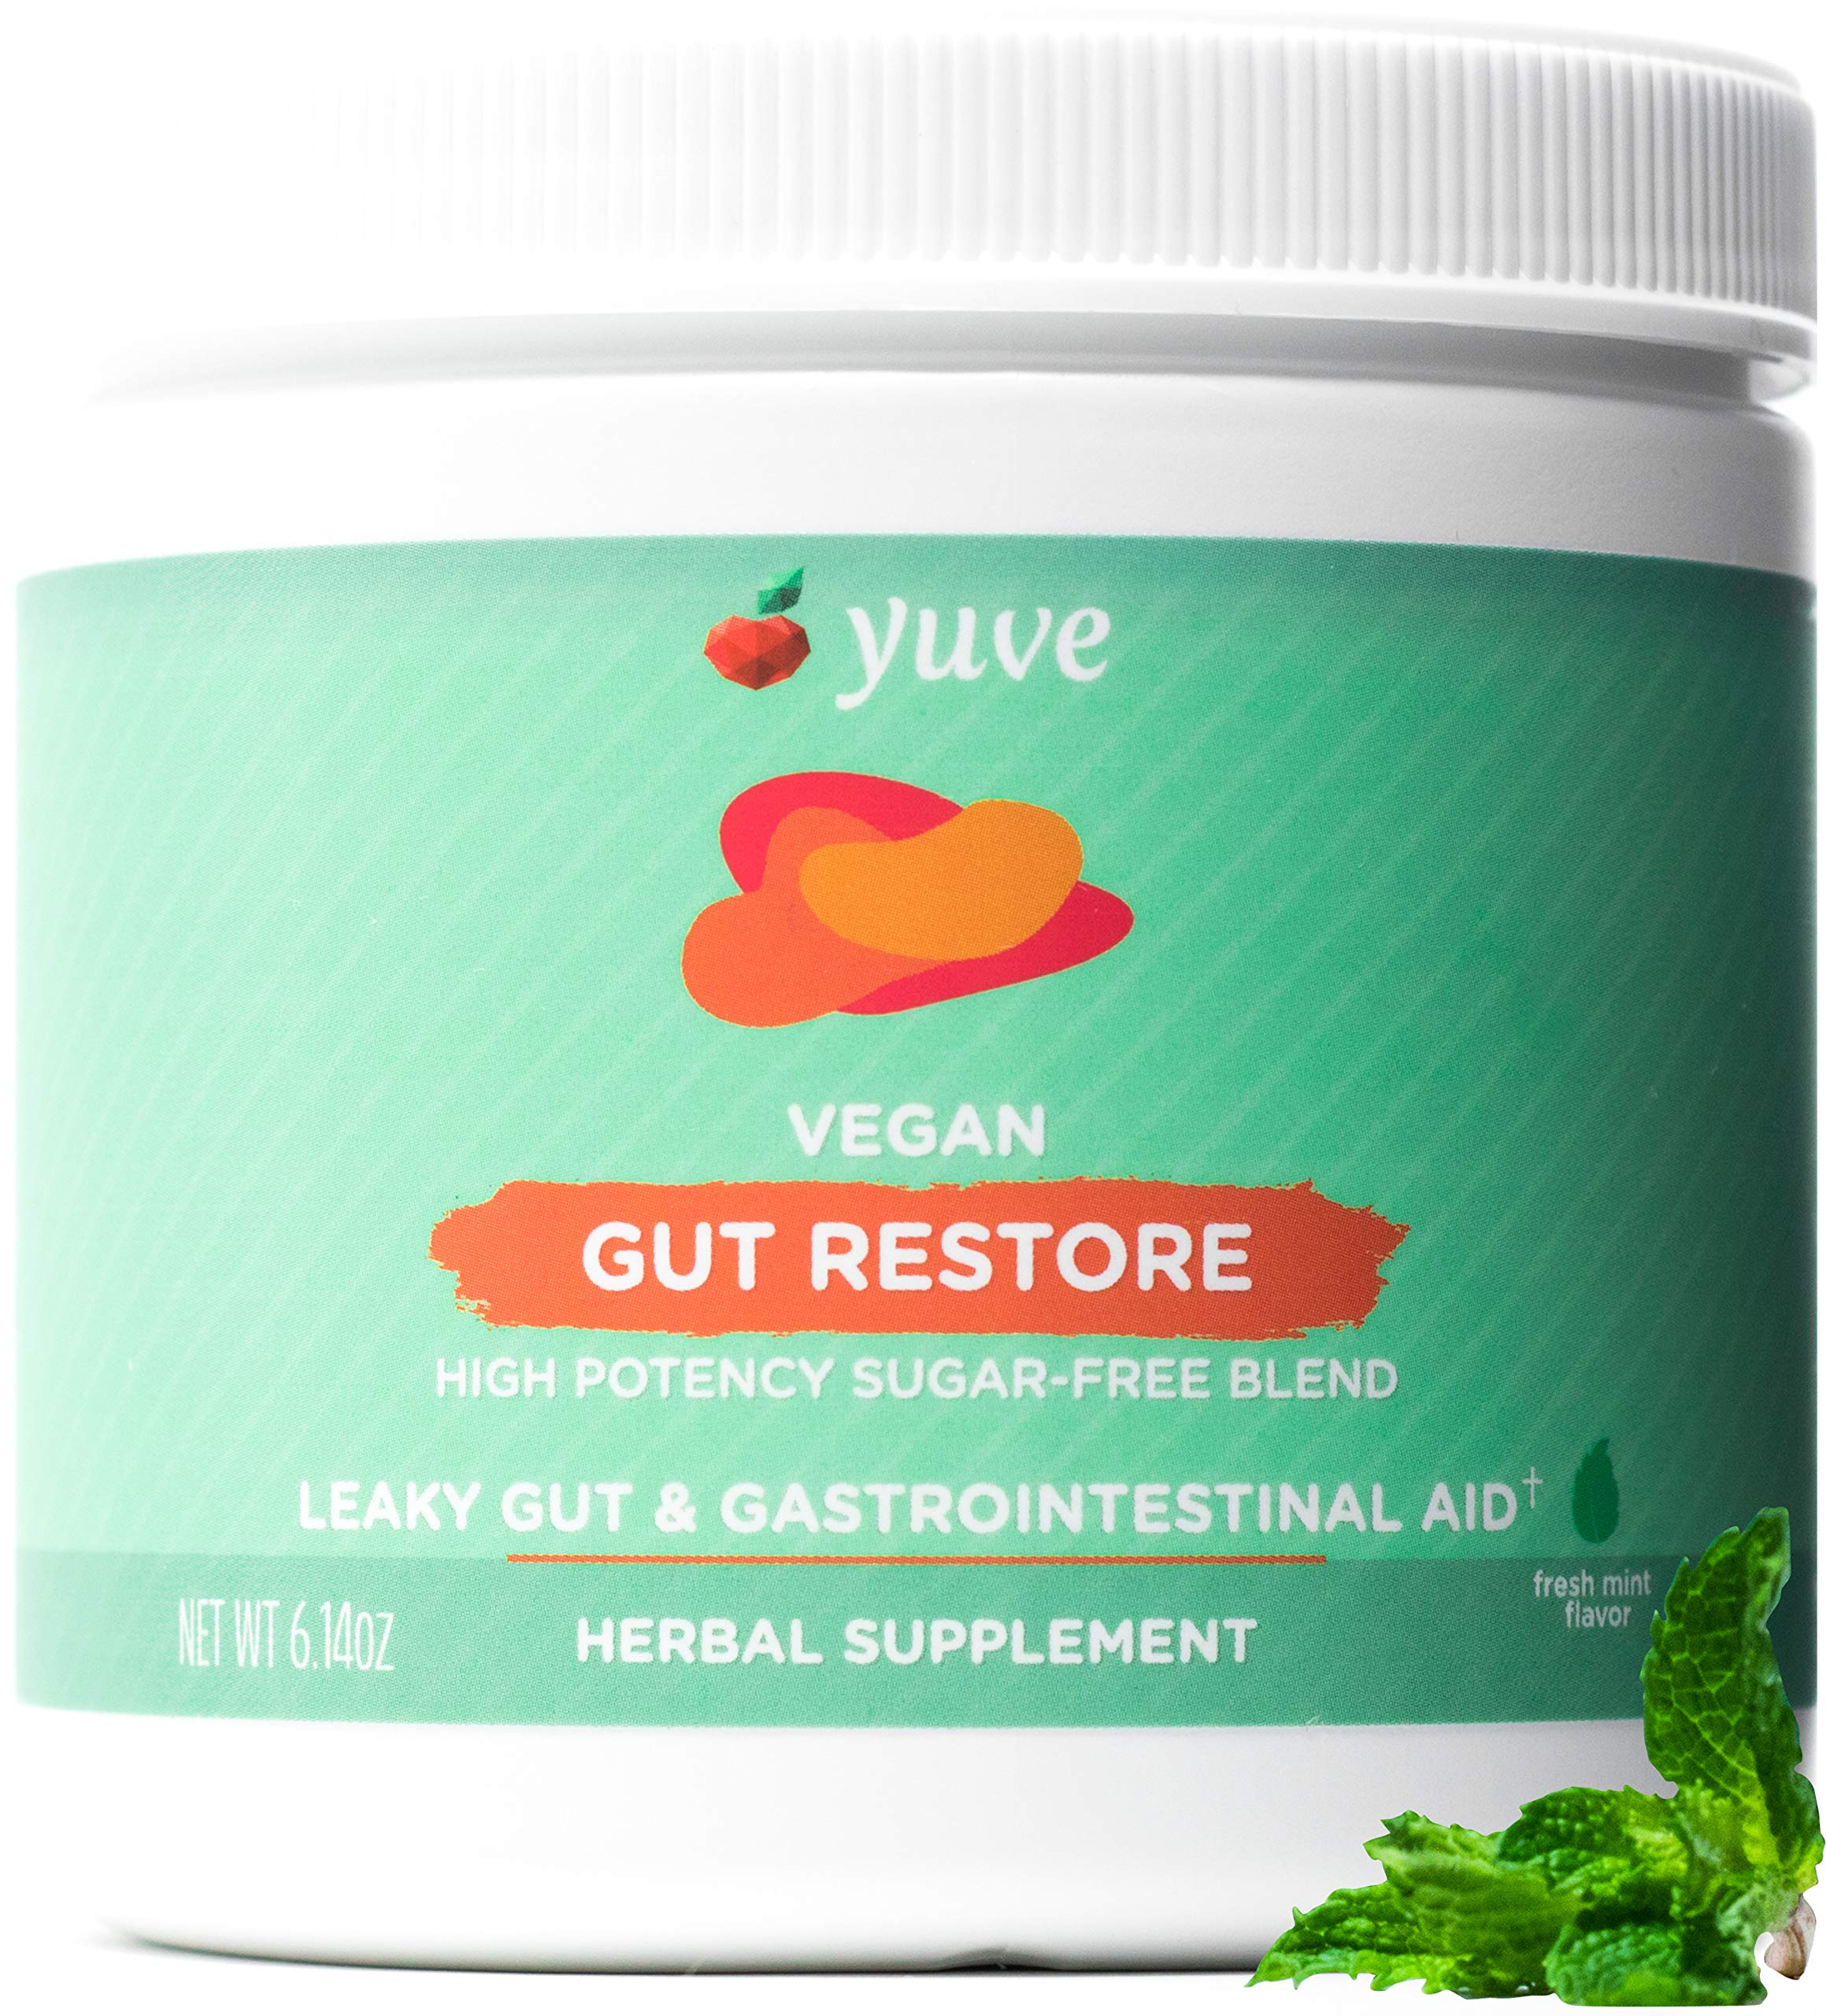 Yuve Gut Restore for Leaky Gut Repair Supplement - Vegan & Non-GMO - Bloating, Heartburn, Constipation, Gas, SIBO Relief - Contains L-Glutamine, Licorice, Aloe - Pharmaceutical Grade - 30 Servings by Yuve